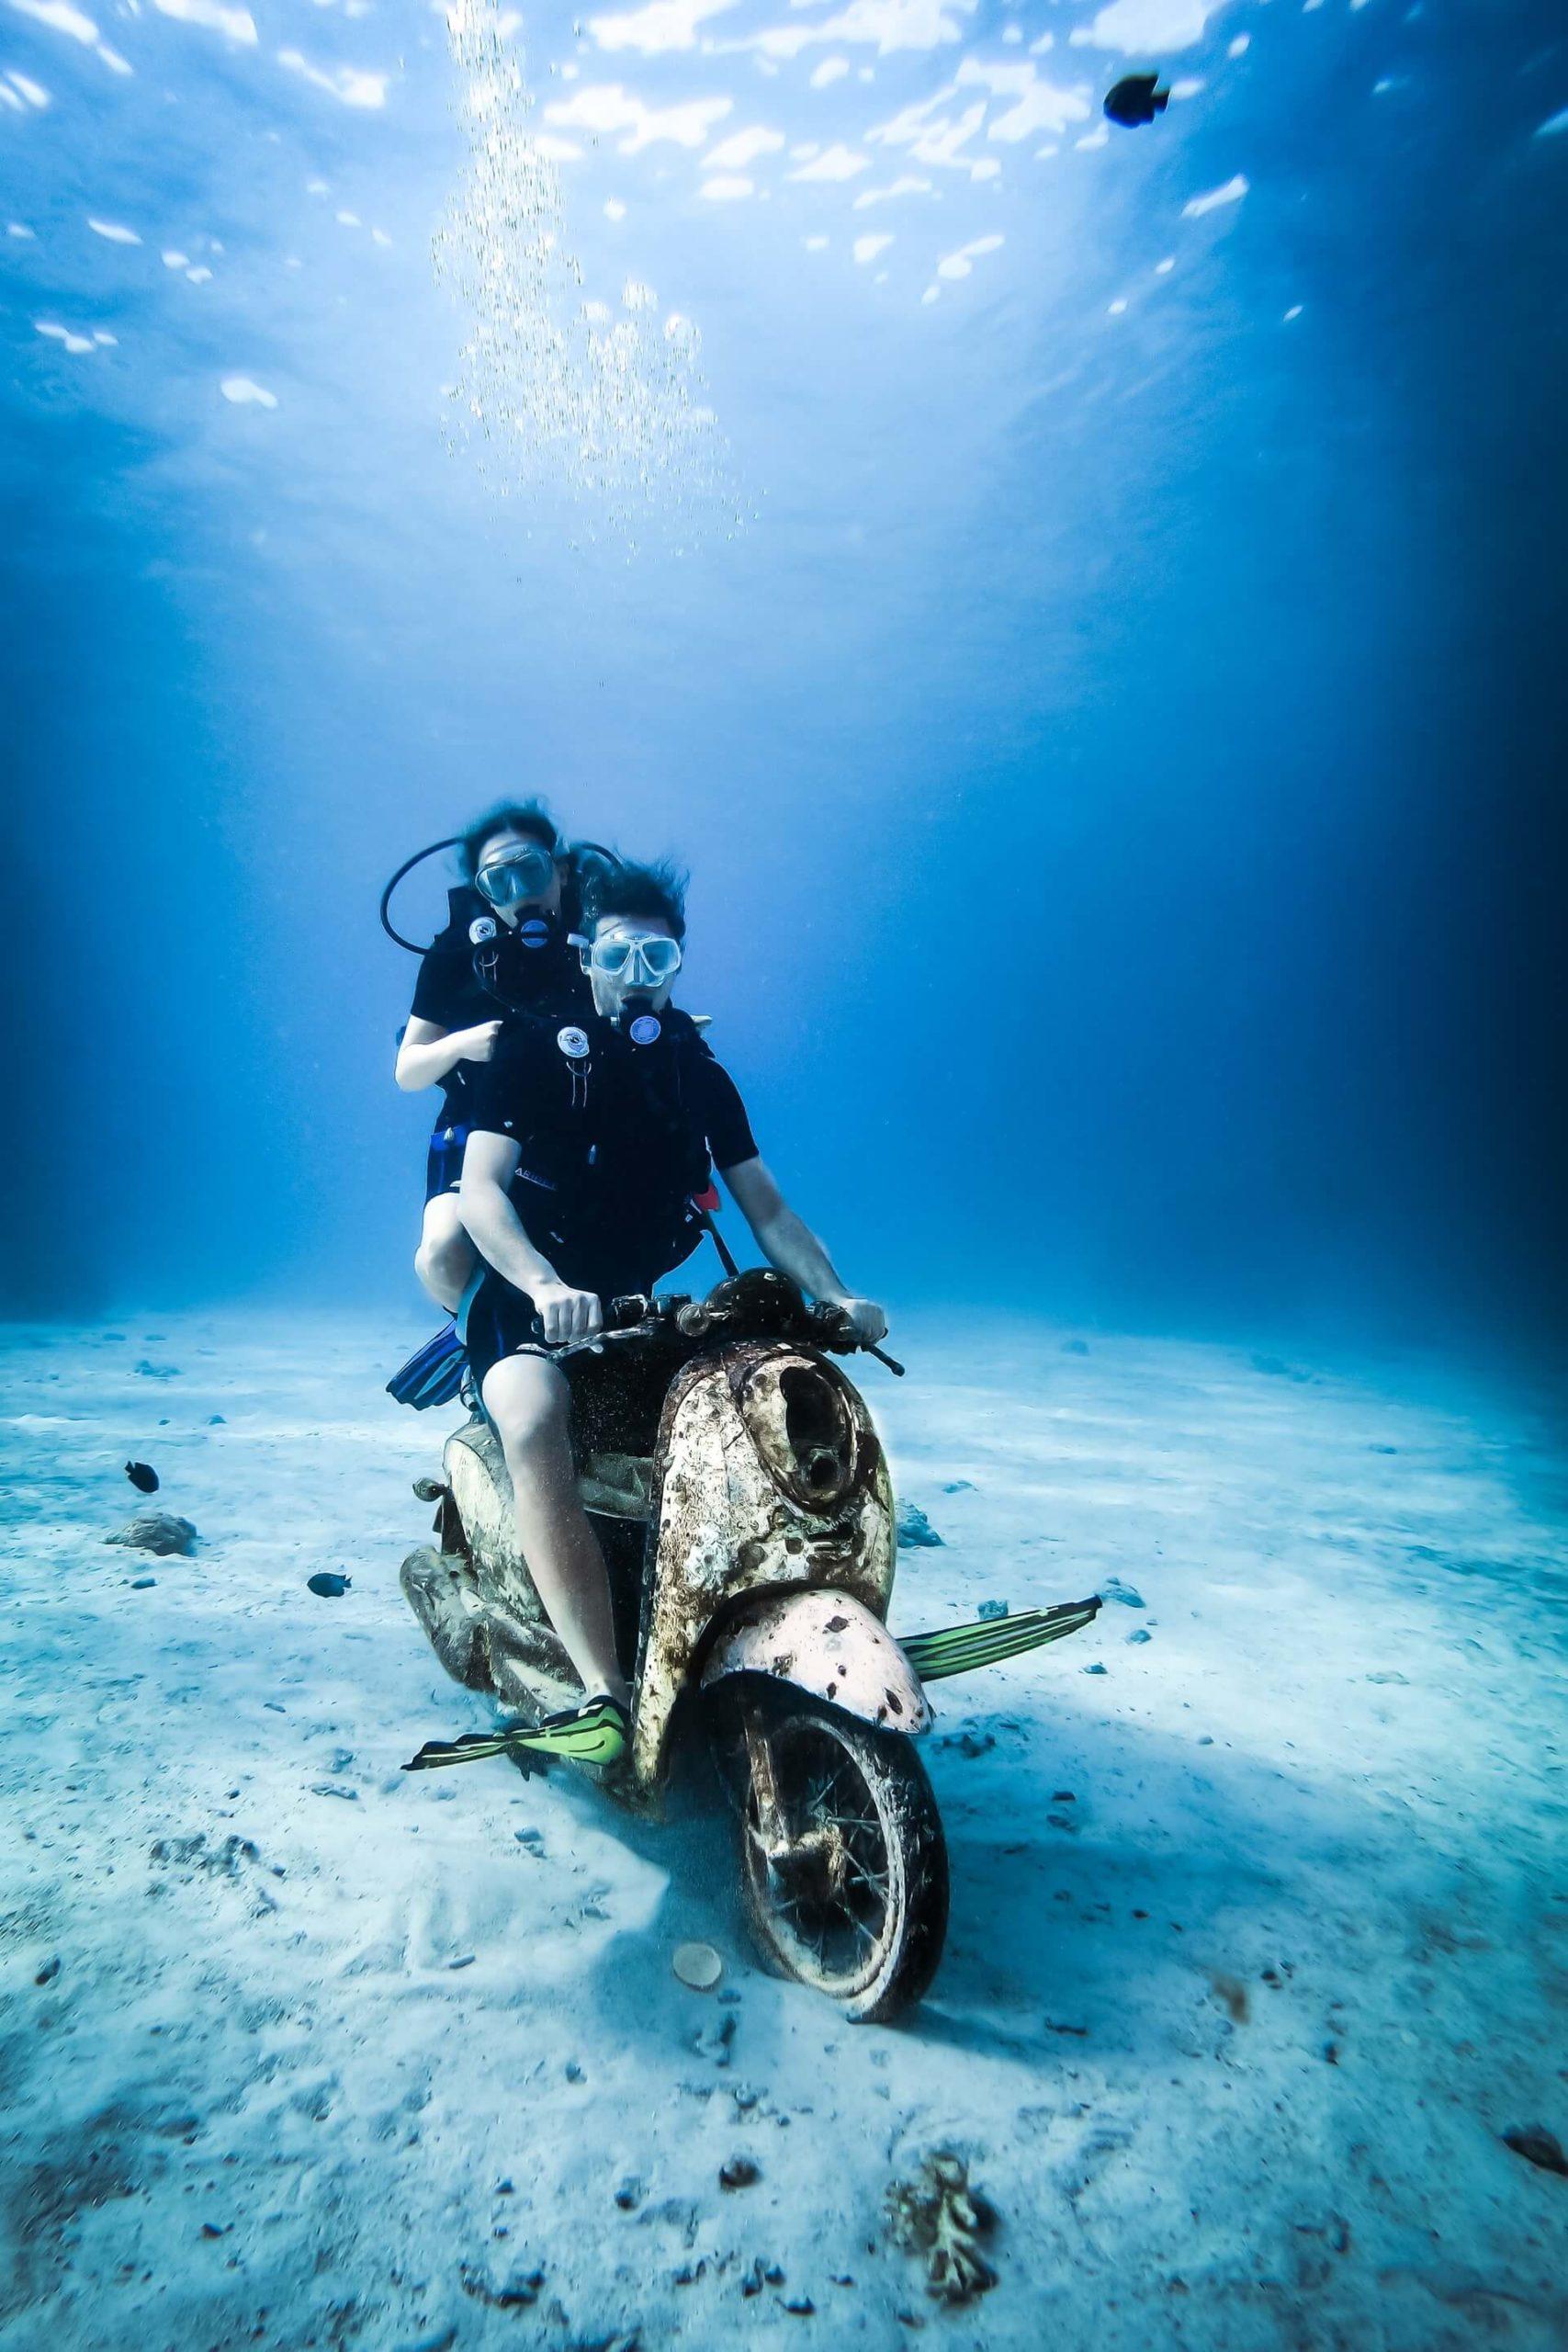 Two divers in New Zealand pulling some shenanigans on a submerged motorbike.